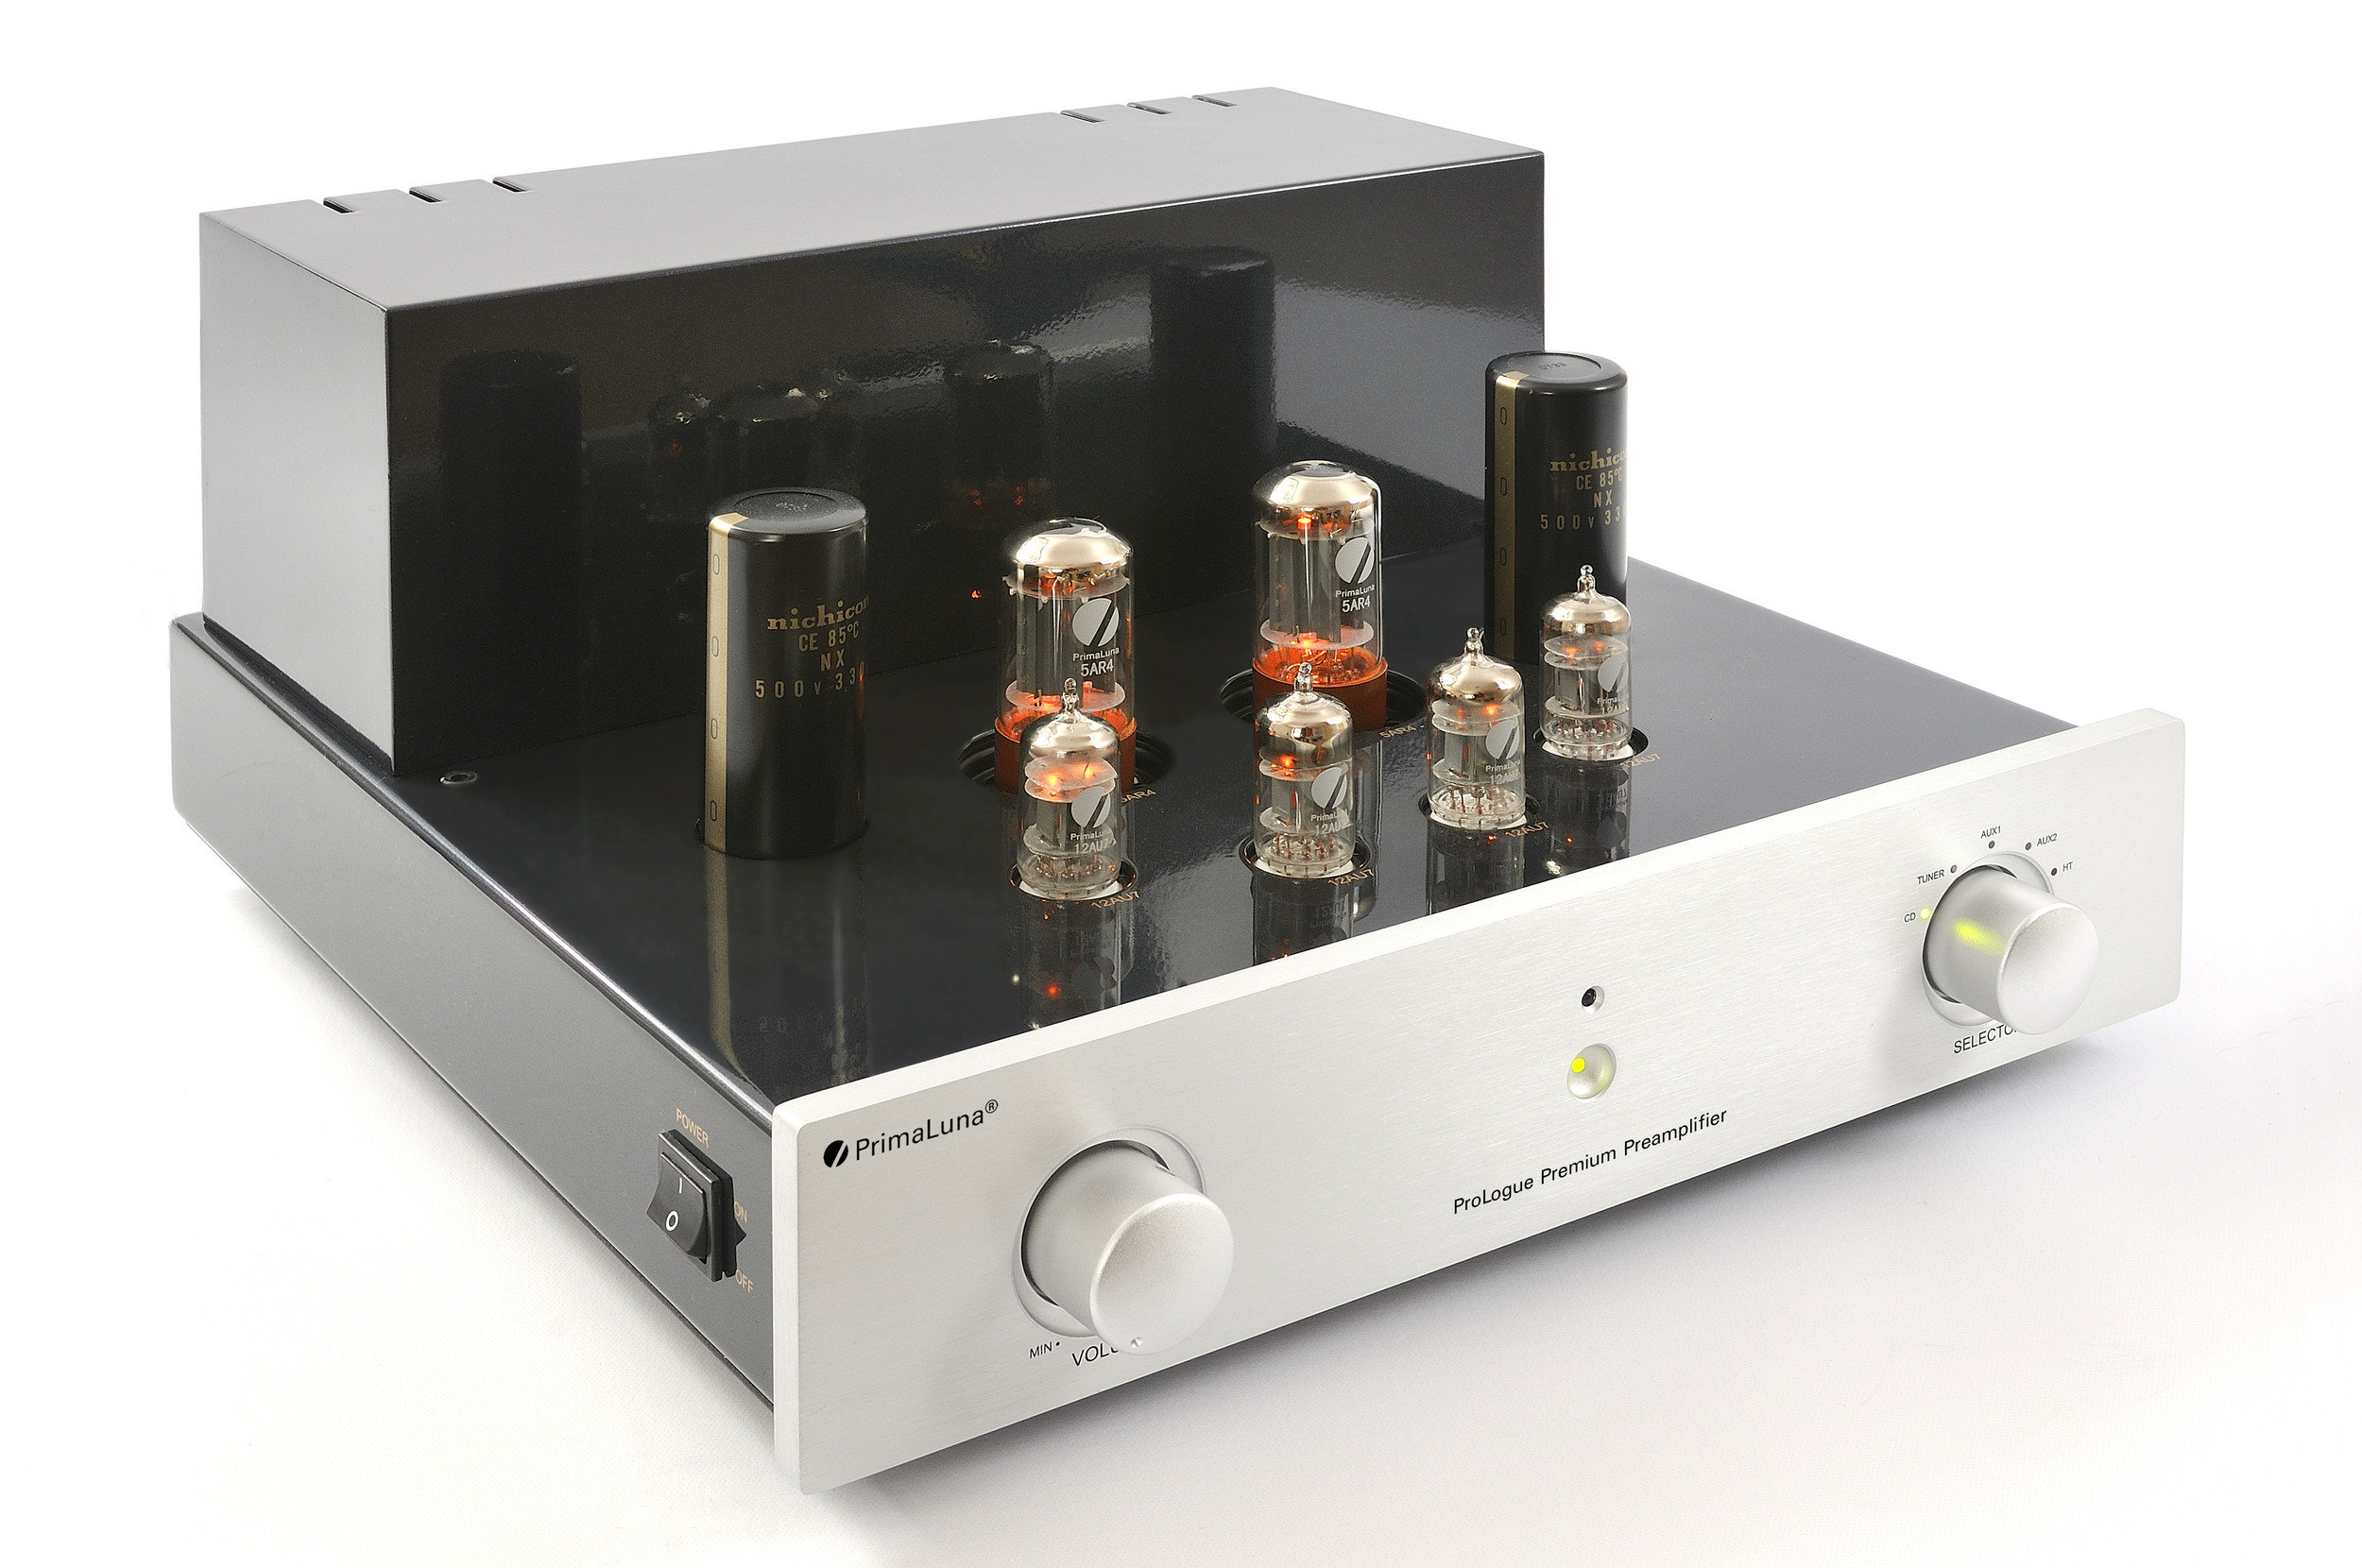 Prologue Premium Preamplifier - silver - front, side with no cover - HR - JPG.jpg